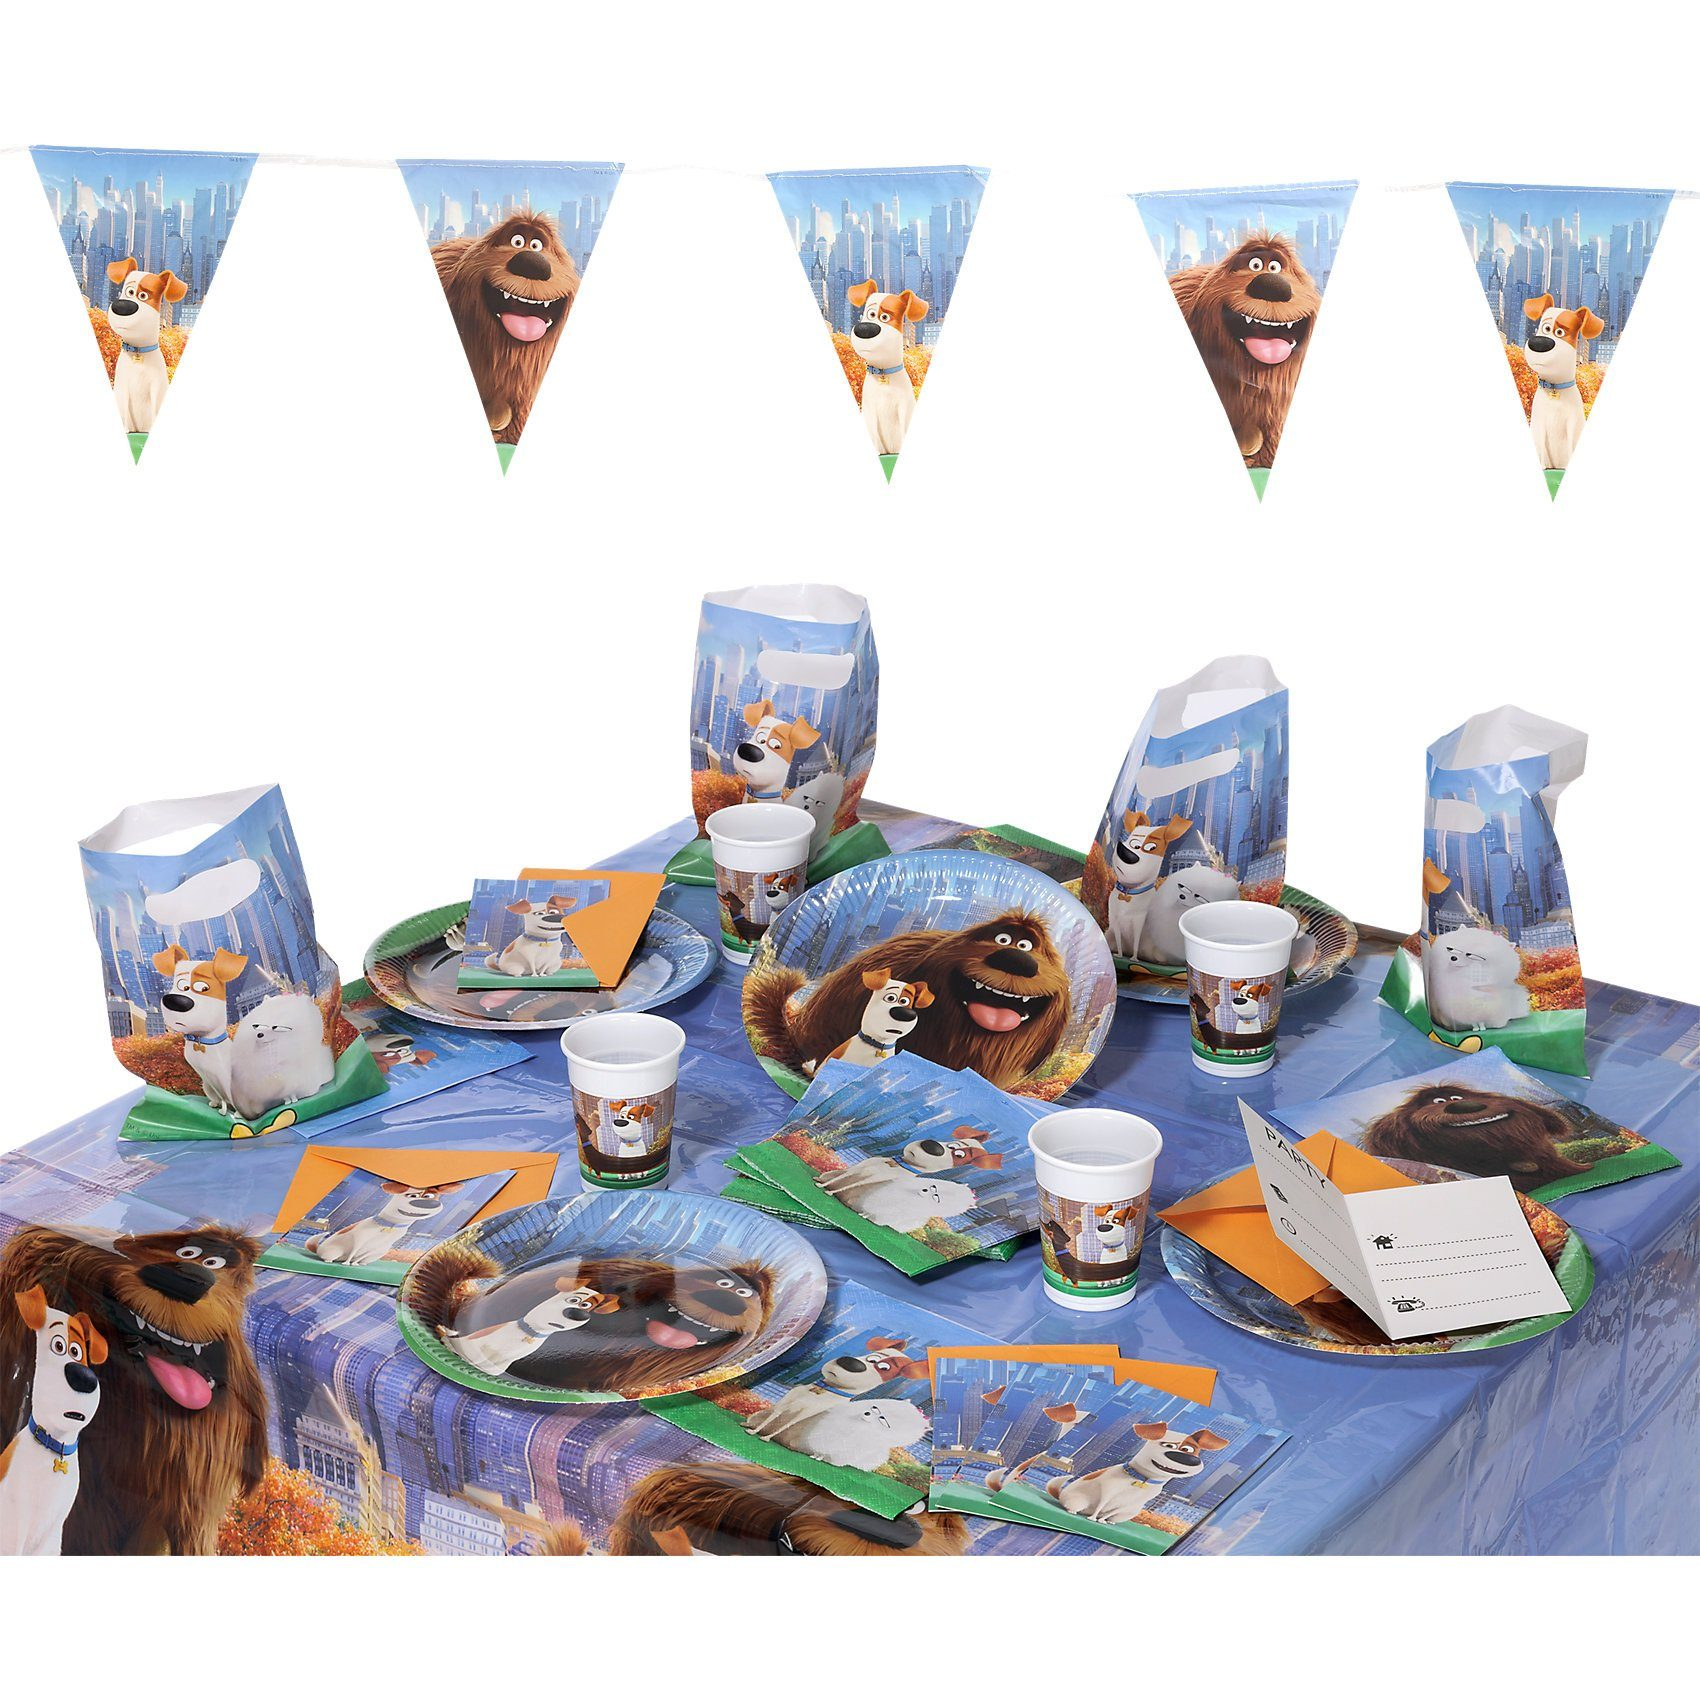 Procos Partyset Secret Life of Pets, 50-tlg.